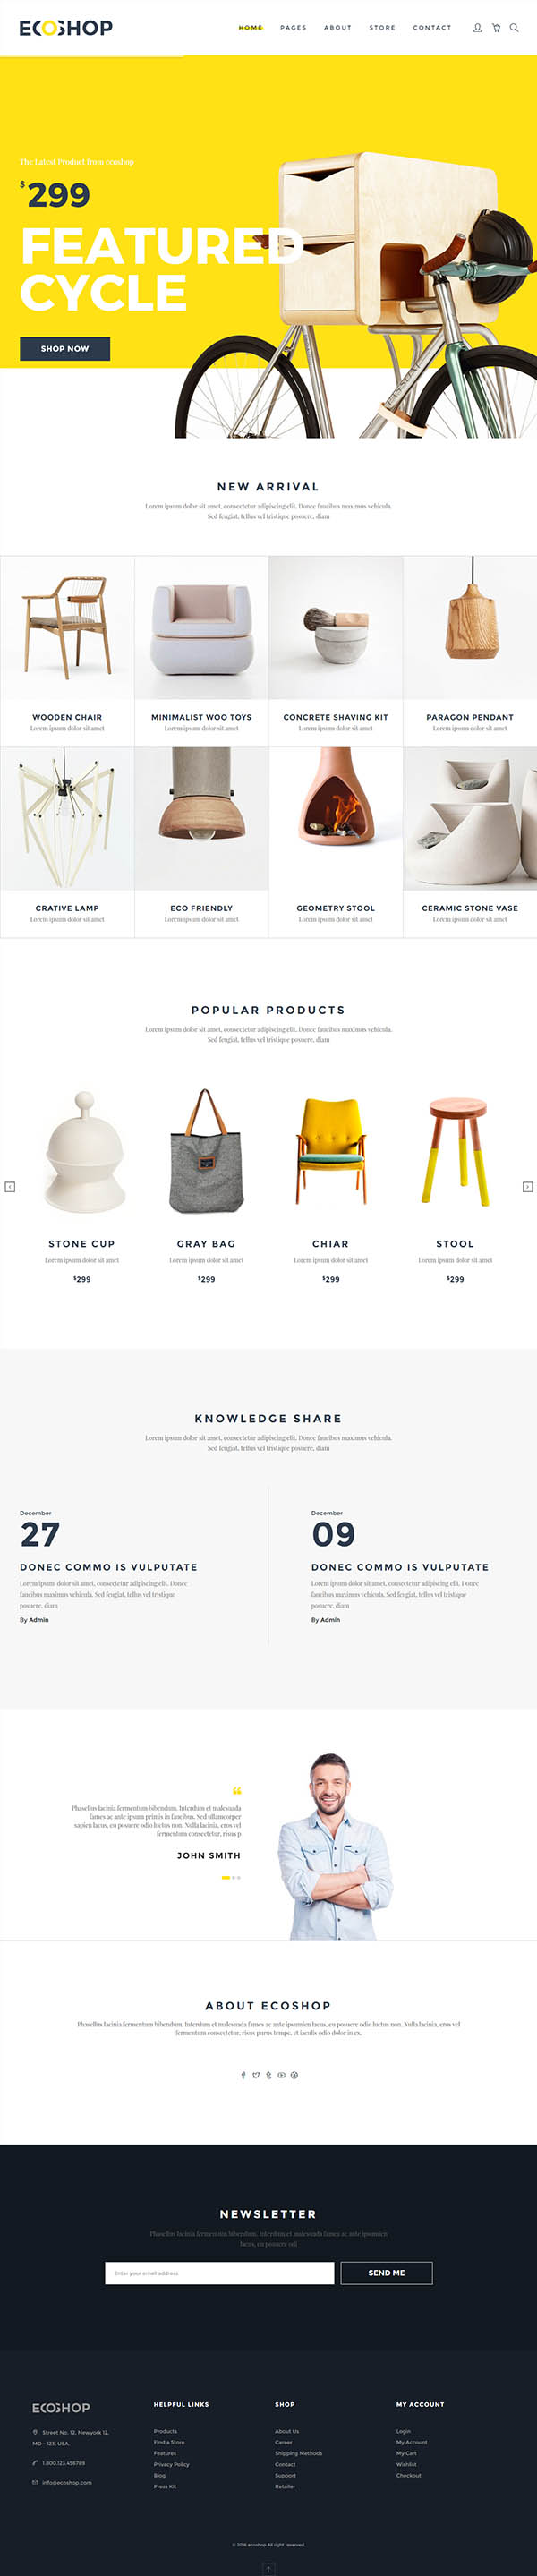 ECOSHOP - Multipurpose eCommerce HTML5 Template